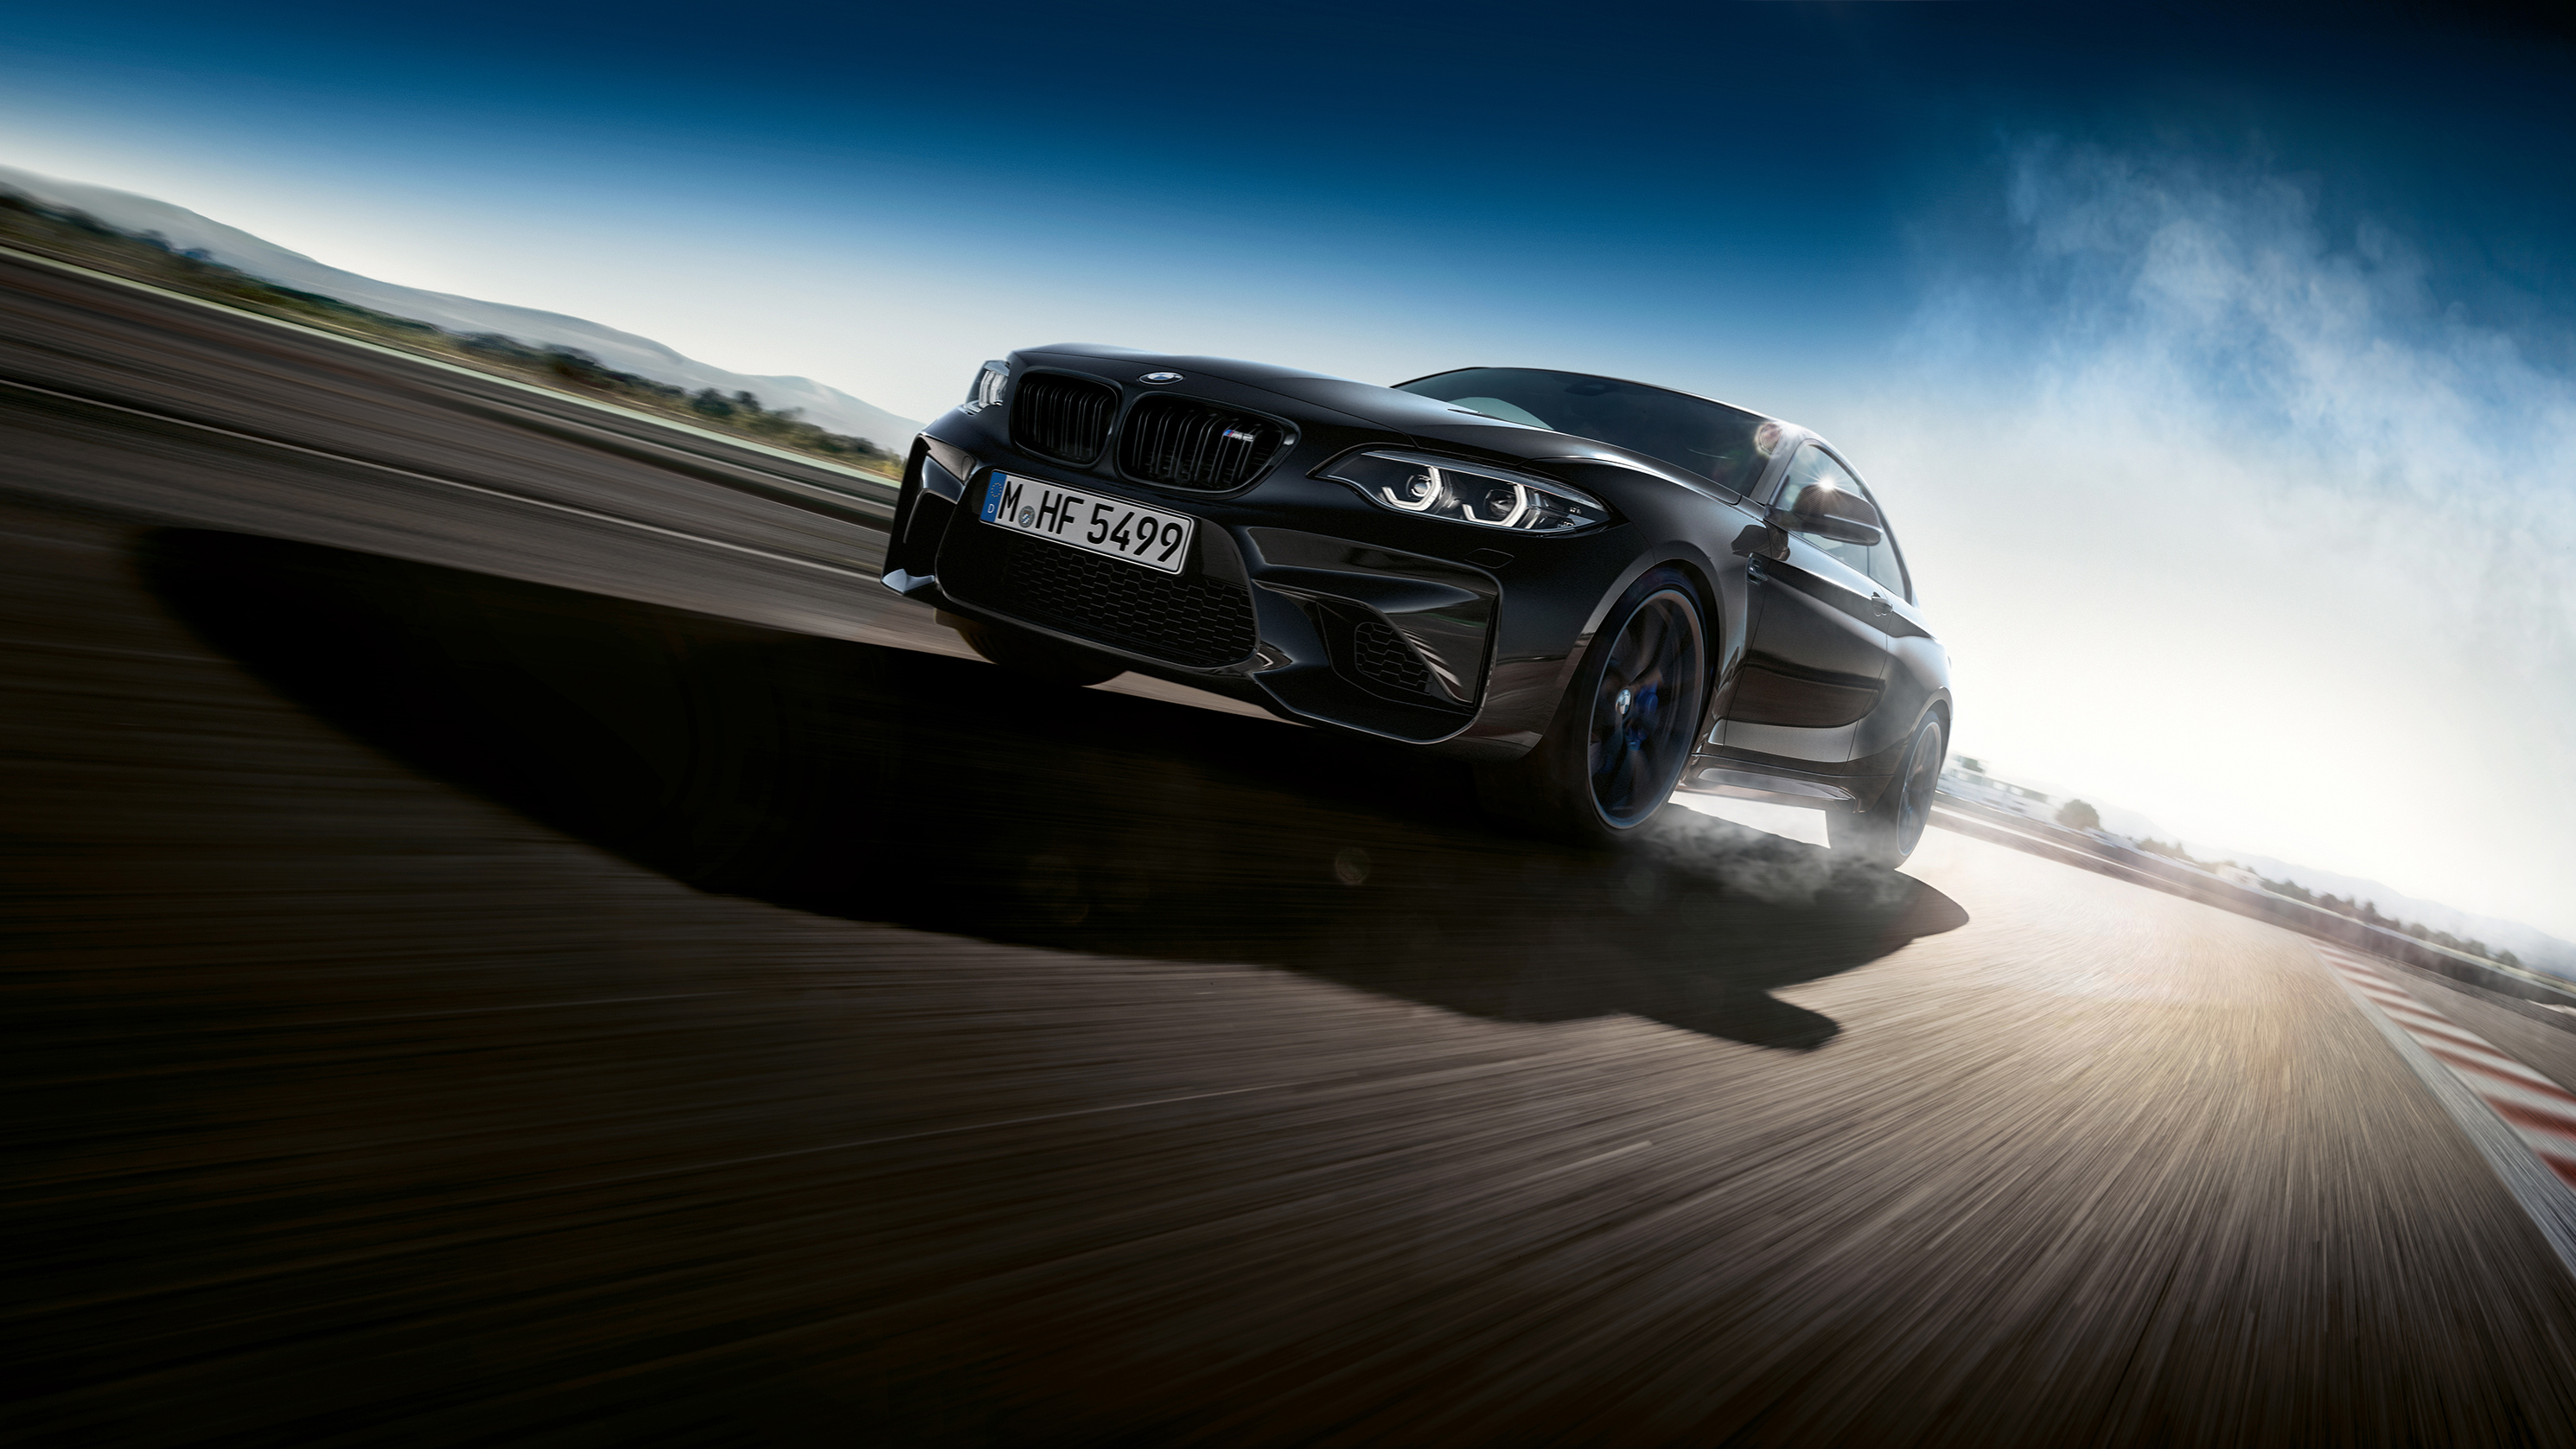 2018 BMW M2 Coupe Edition Black Shadow Wallpaper | HD Car ...